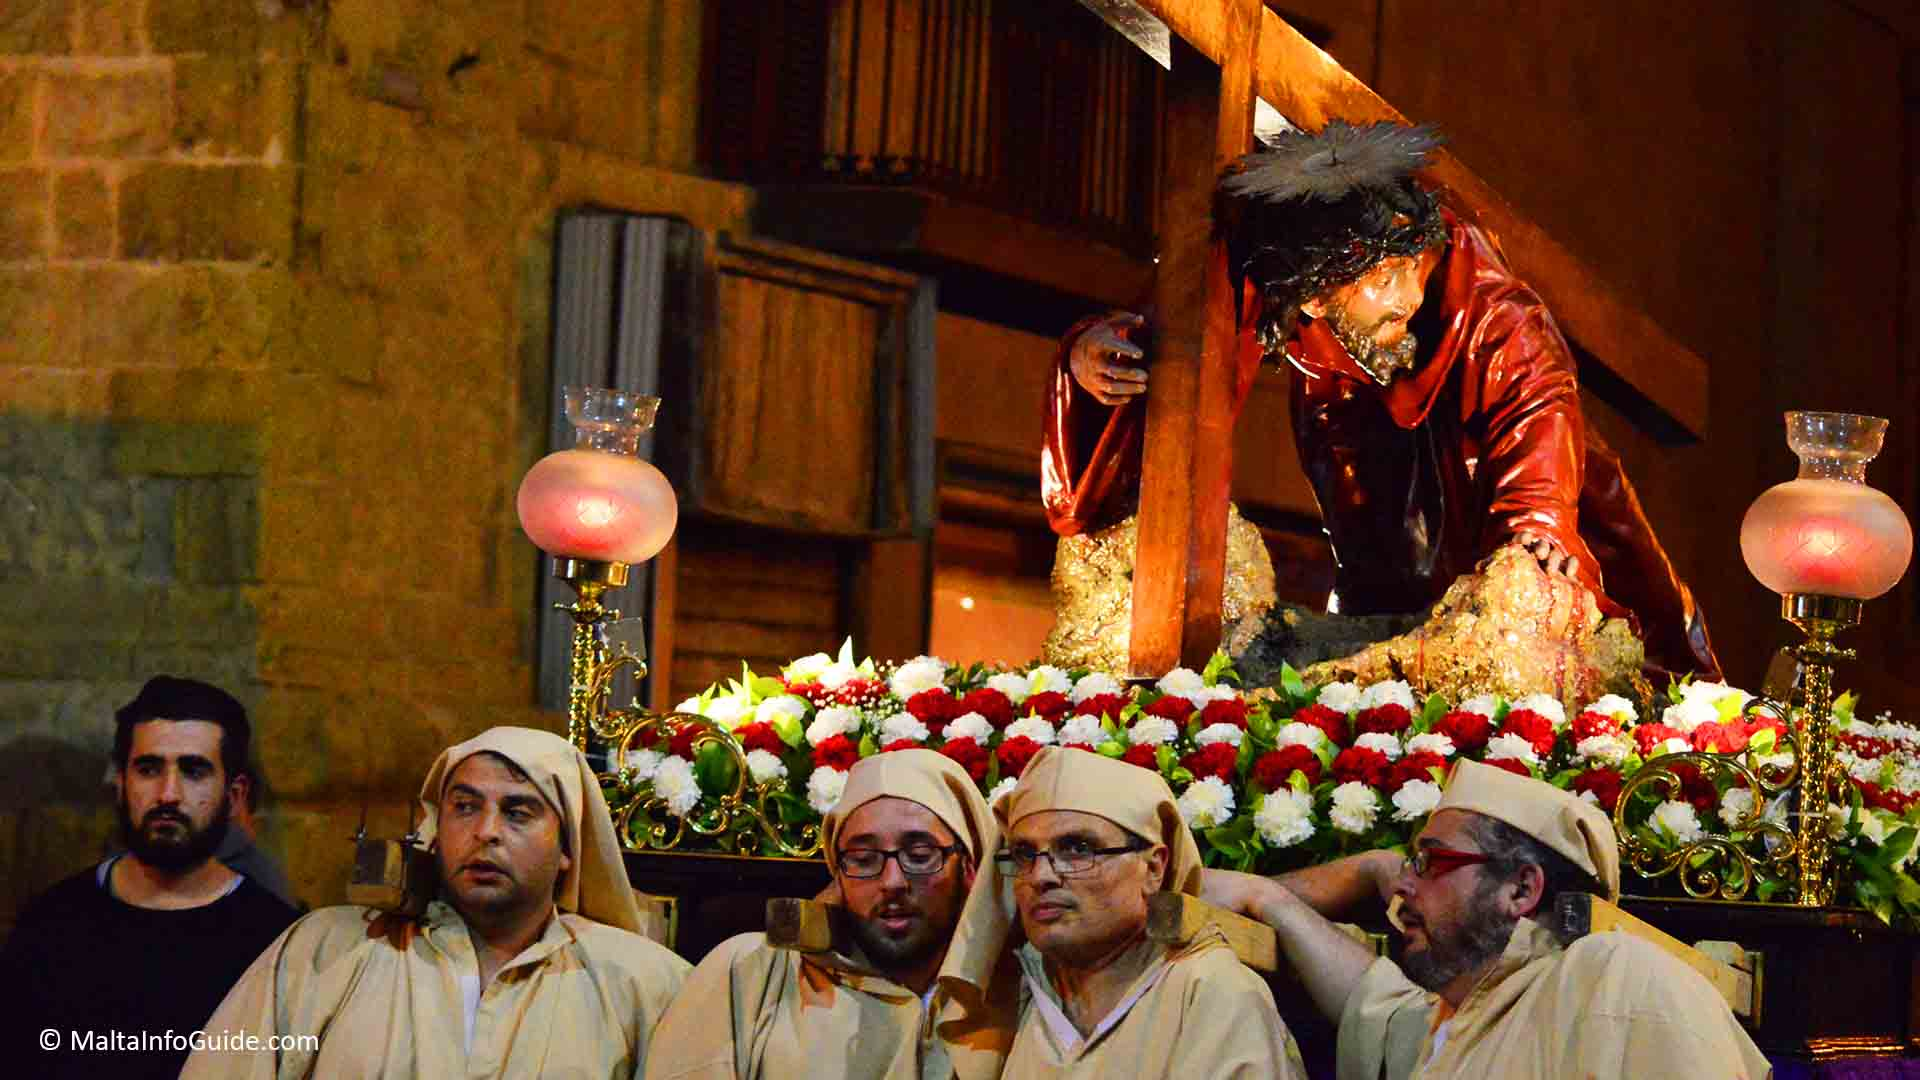 Statue - Jesus carrying the Cross during Good Friday procession in Valletta